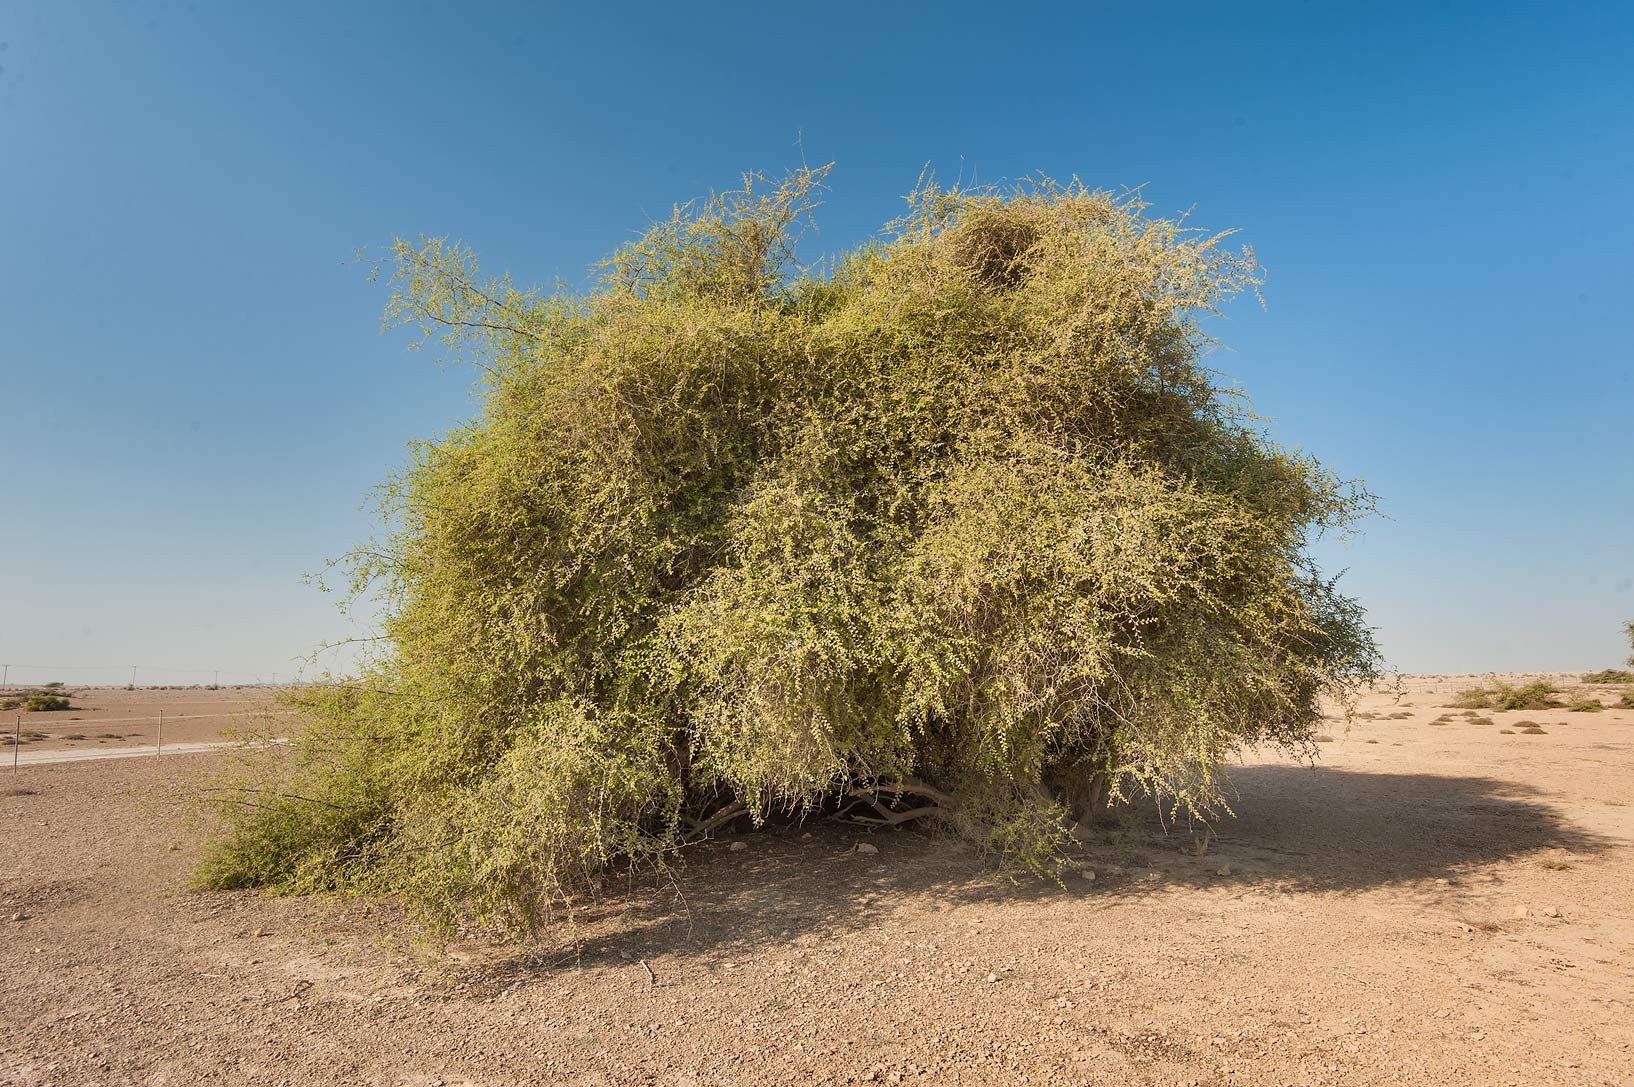 Large bush of Ziziphus nummularia in a silty...Nuaman (Numan) in north-western Qatar